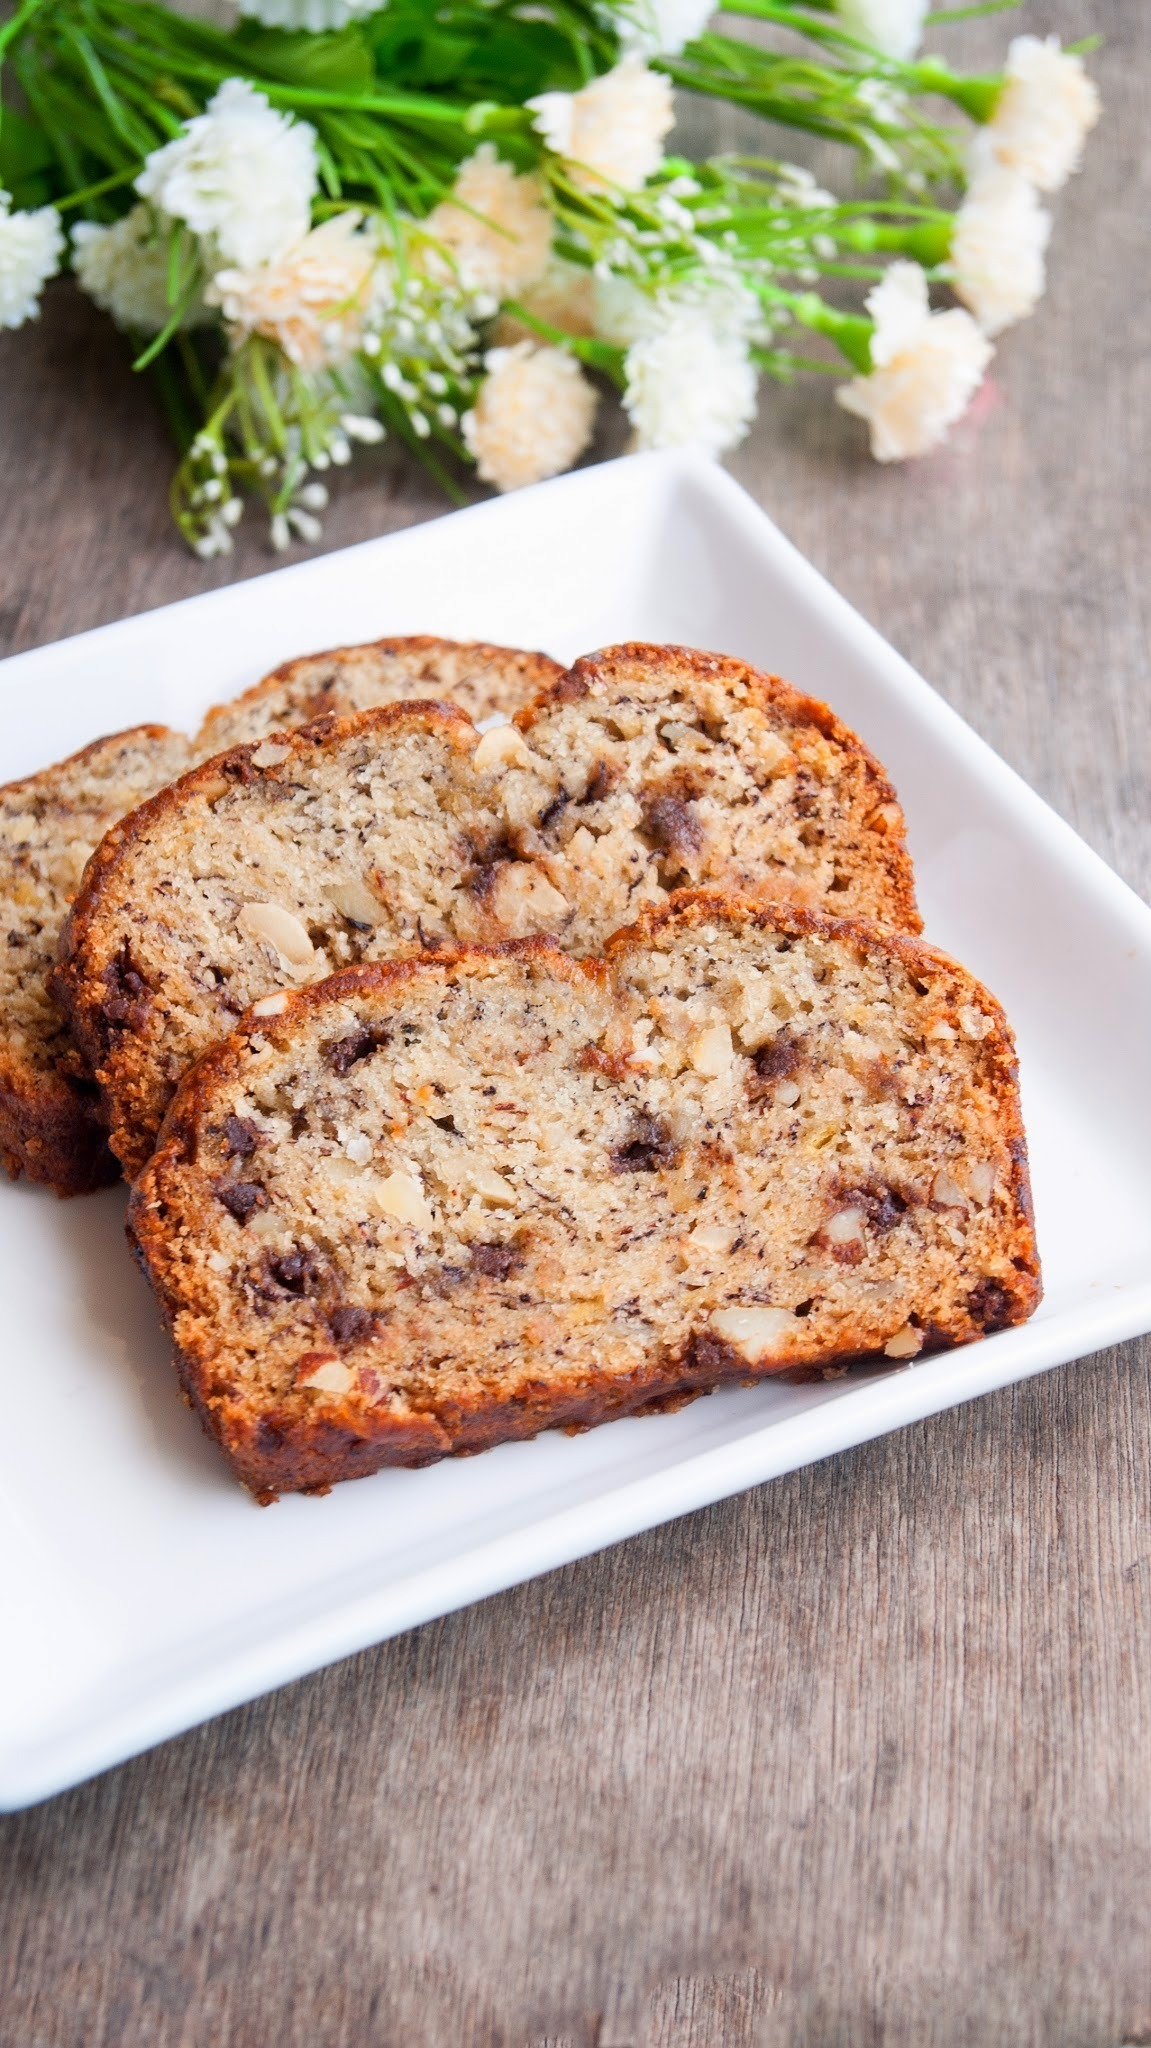 Eggless Banana Bread with walnuts and chocolate chips